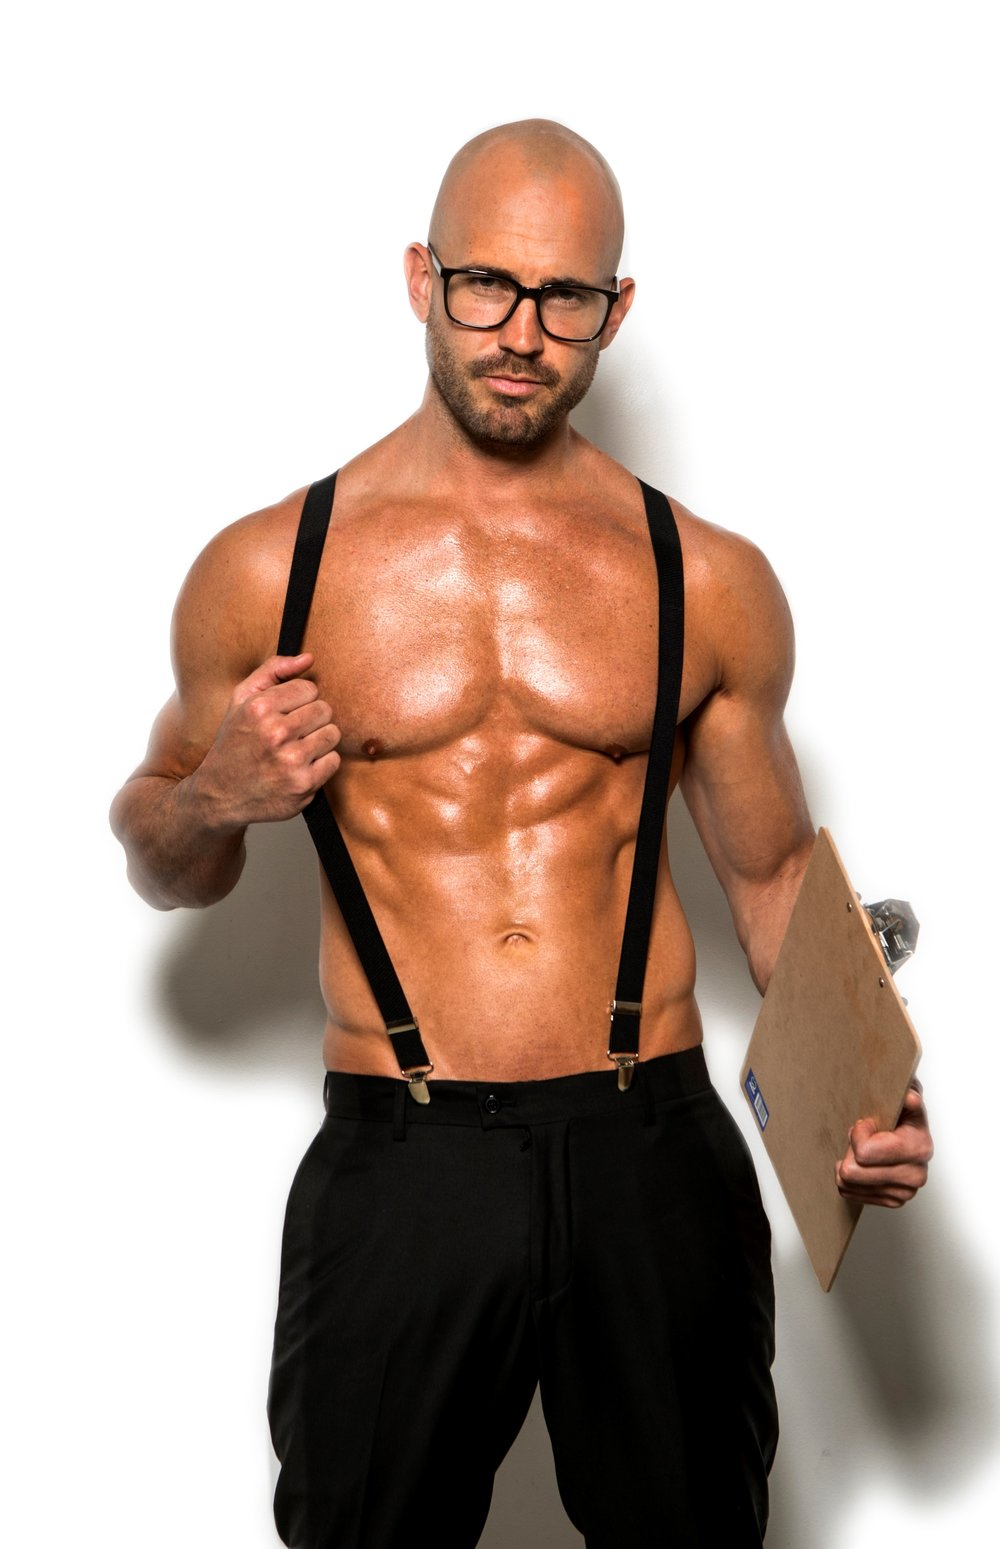 hire and book a male stripper for brisbane city, fortitude valley, toowong or logan.